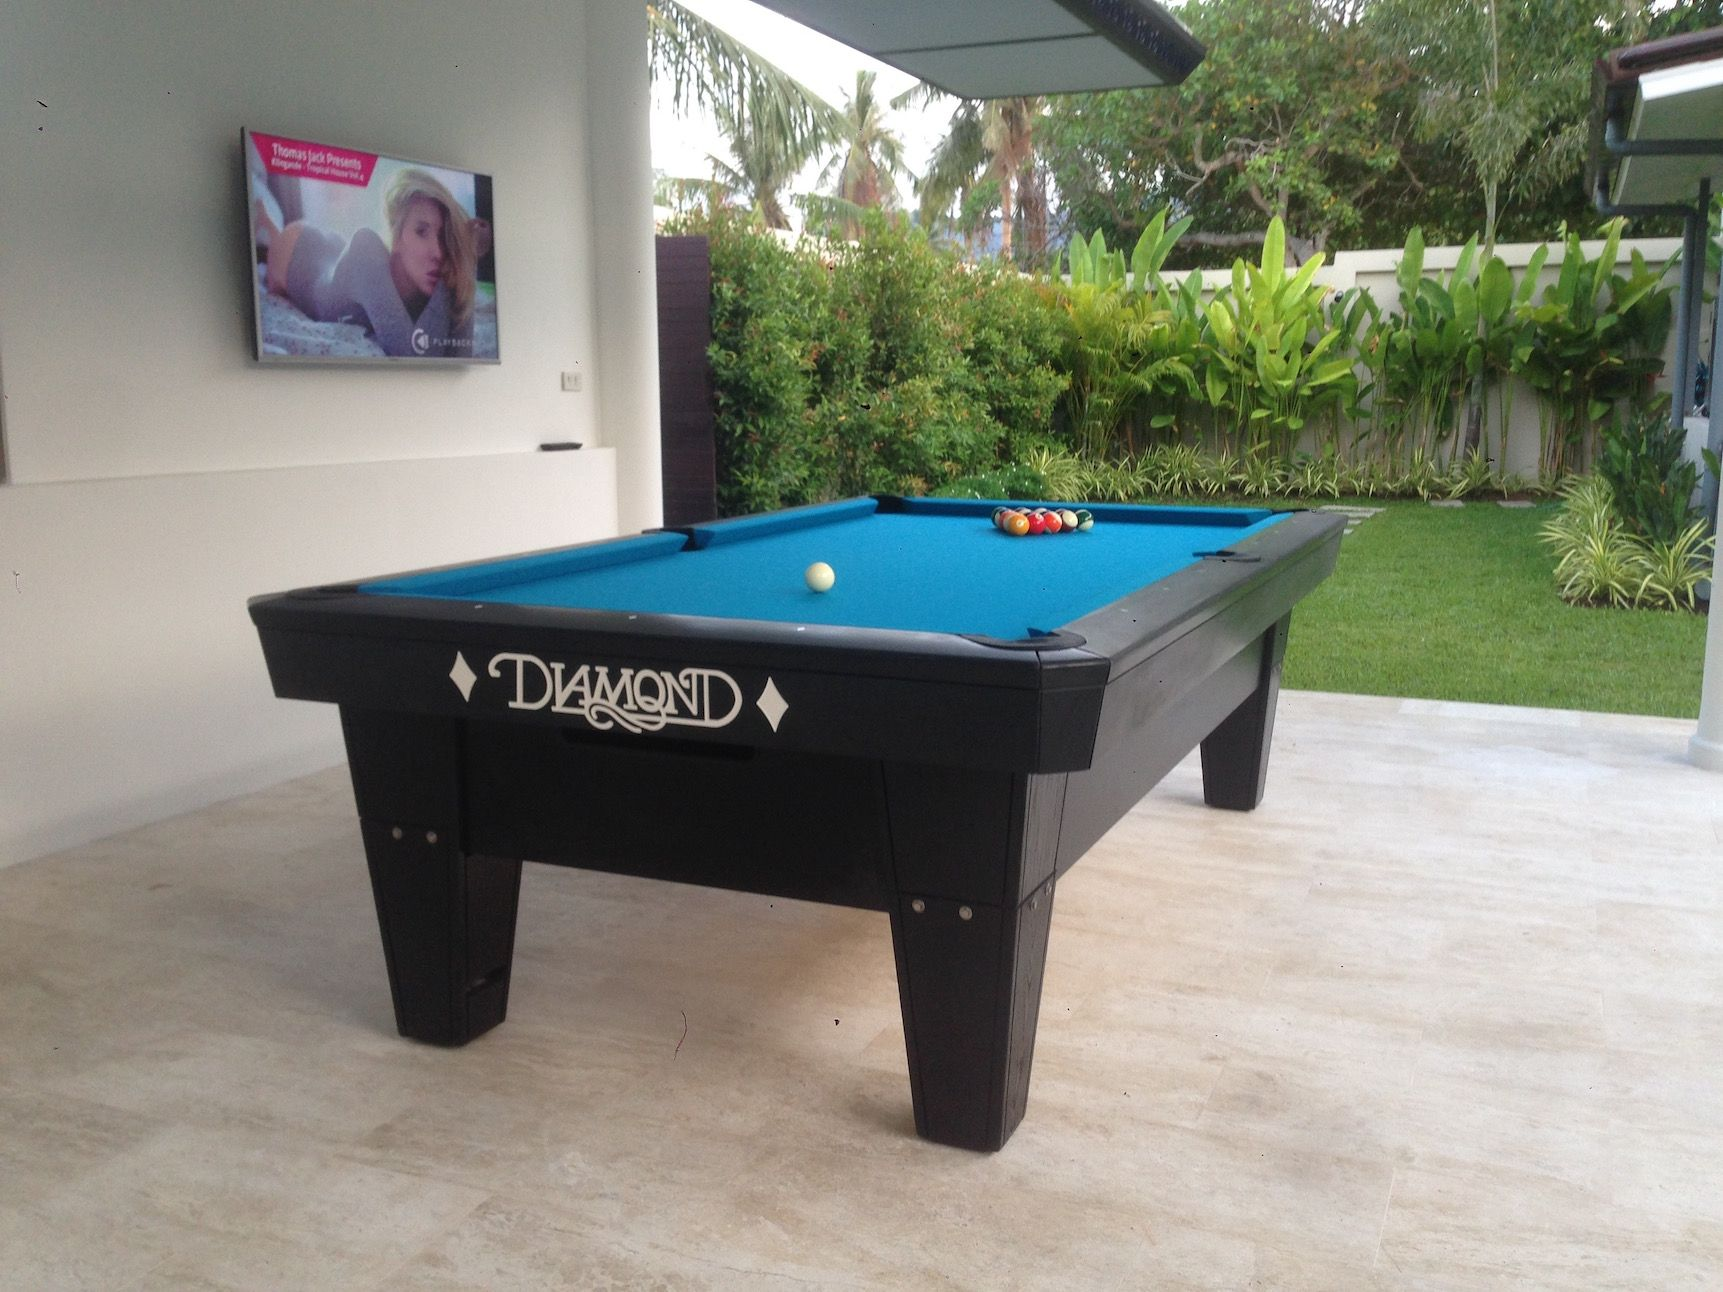 Diamond ProAm Ft With Simonis HR Tournament Blue Delivered In - Diamond pro pool table